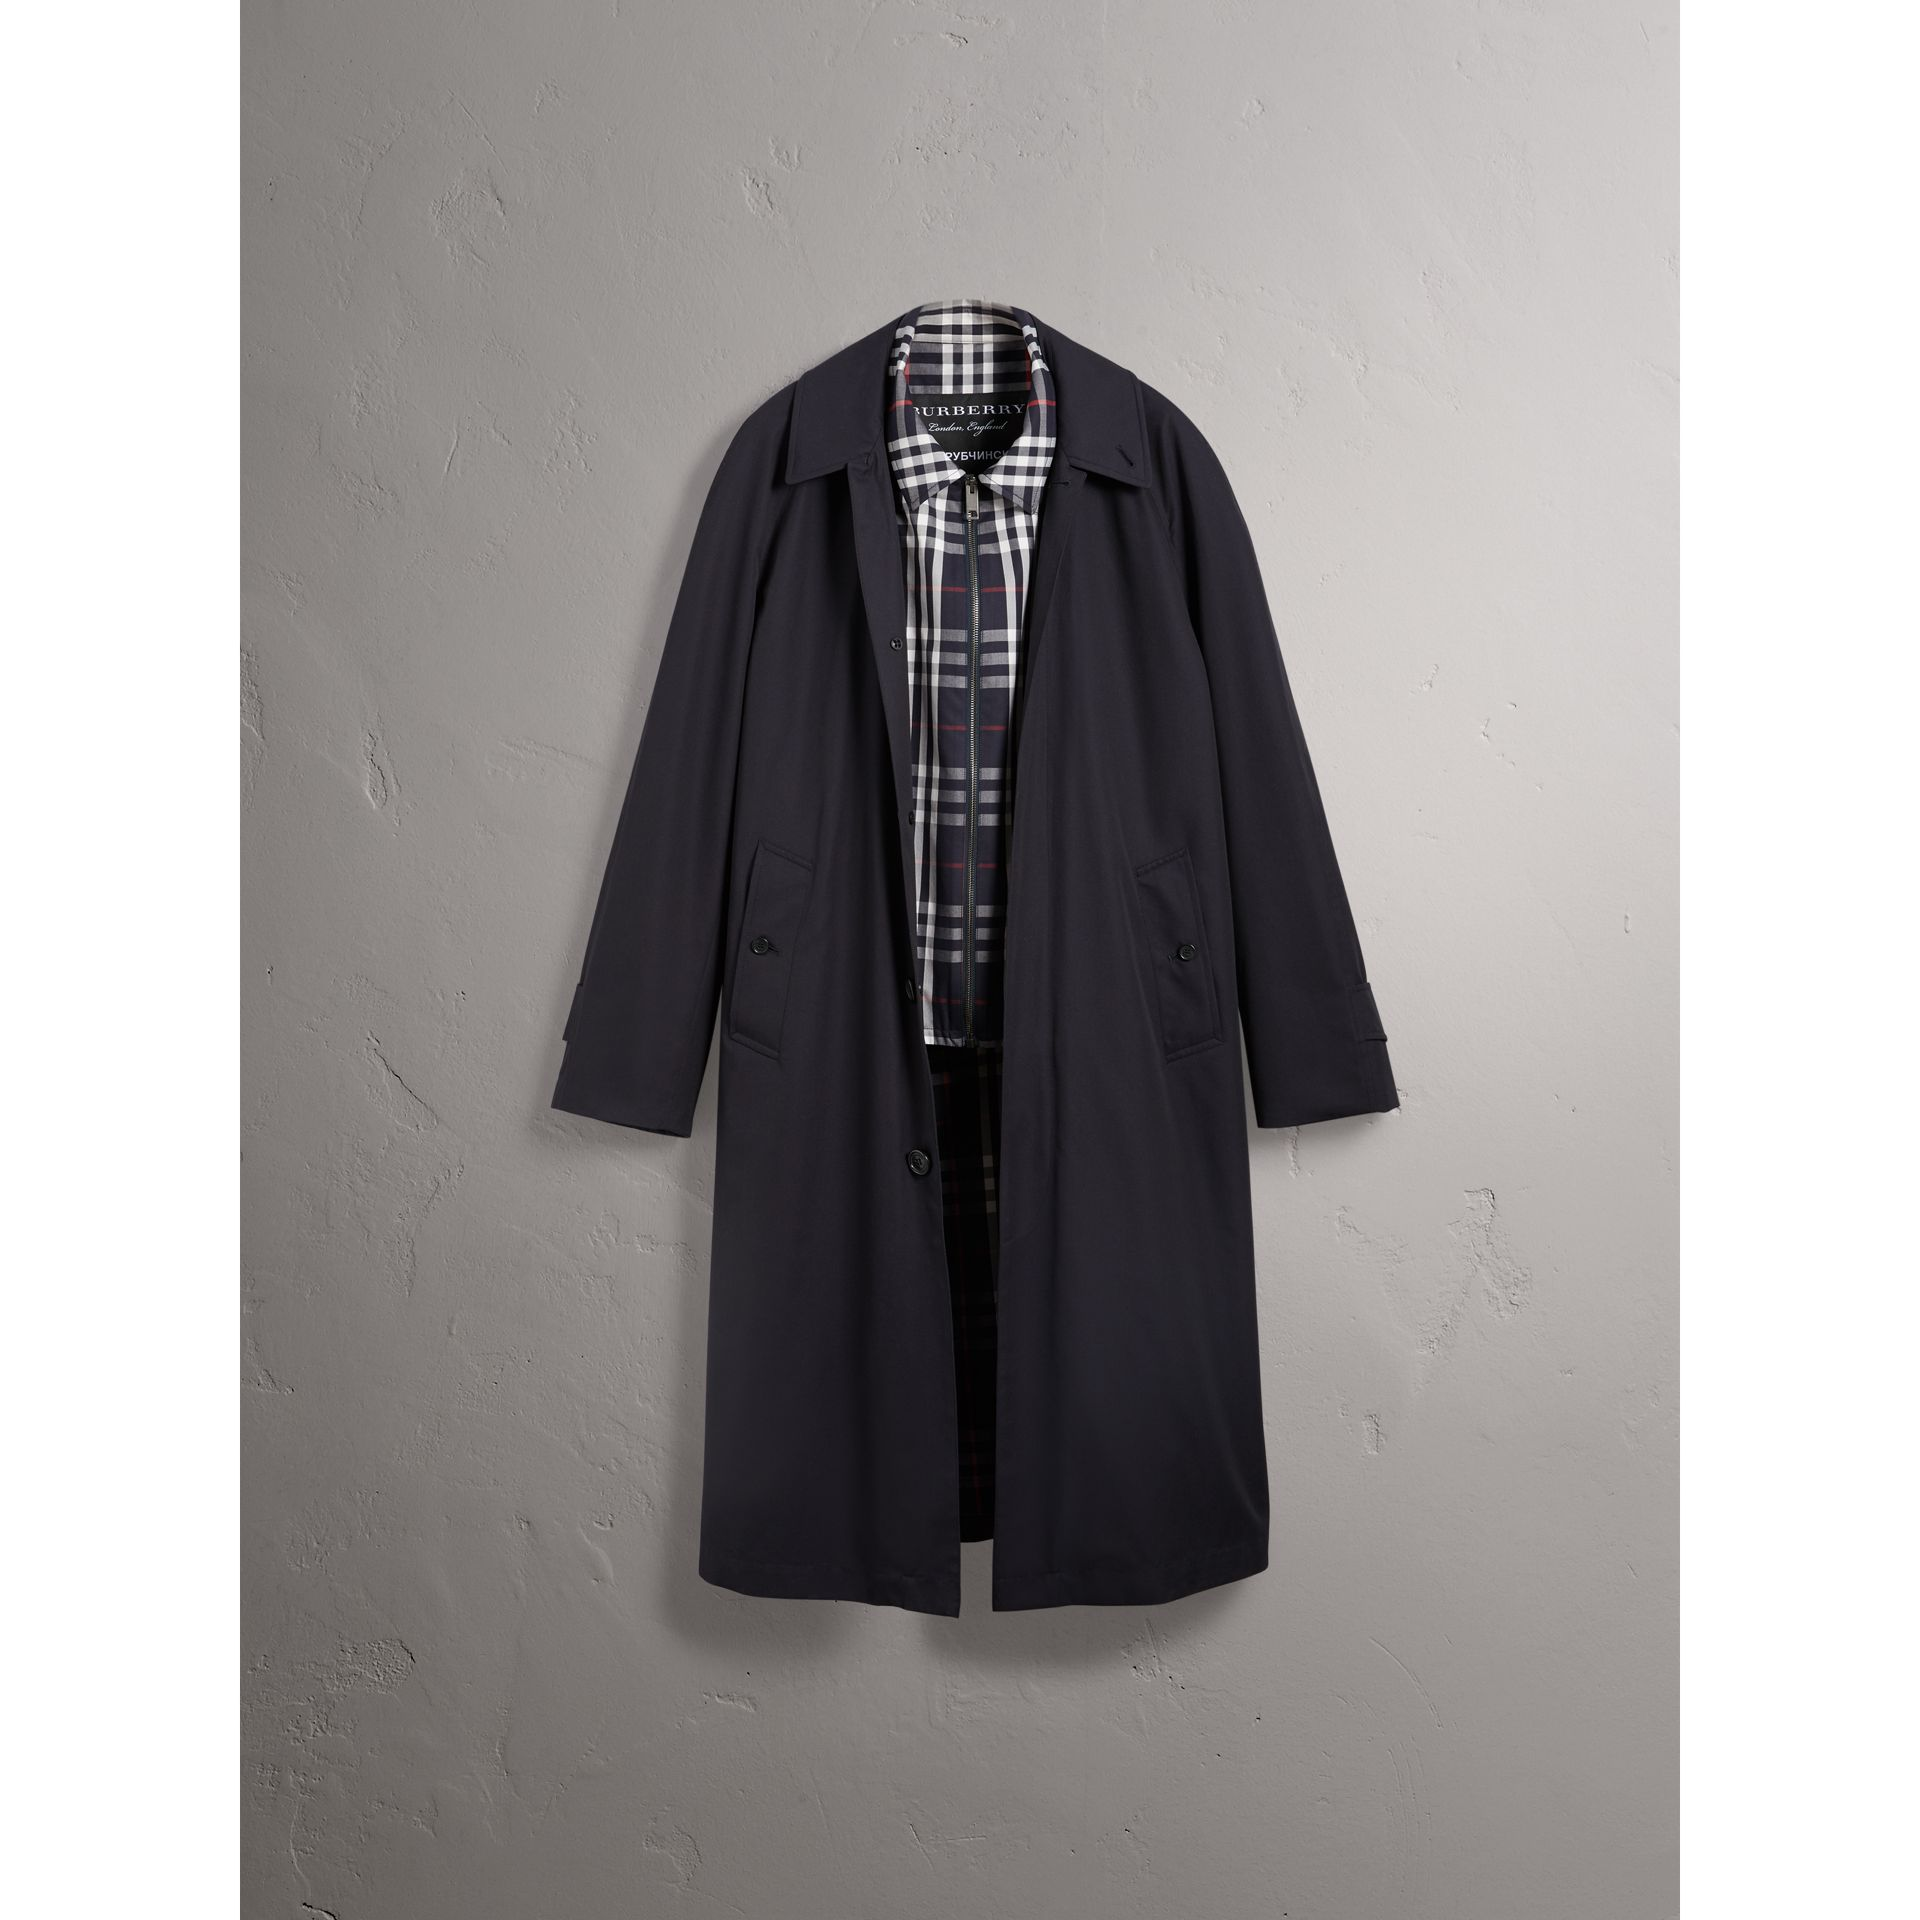 Gosha x Burberry Reconstructed Car Coat in Navy | Burberry - gallery image 4